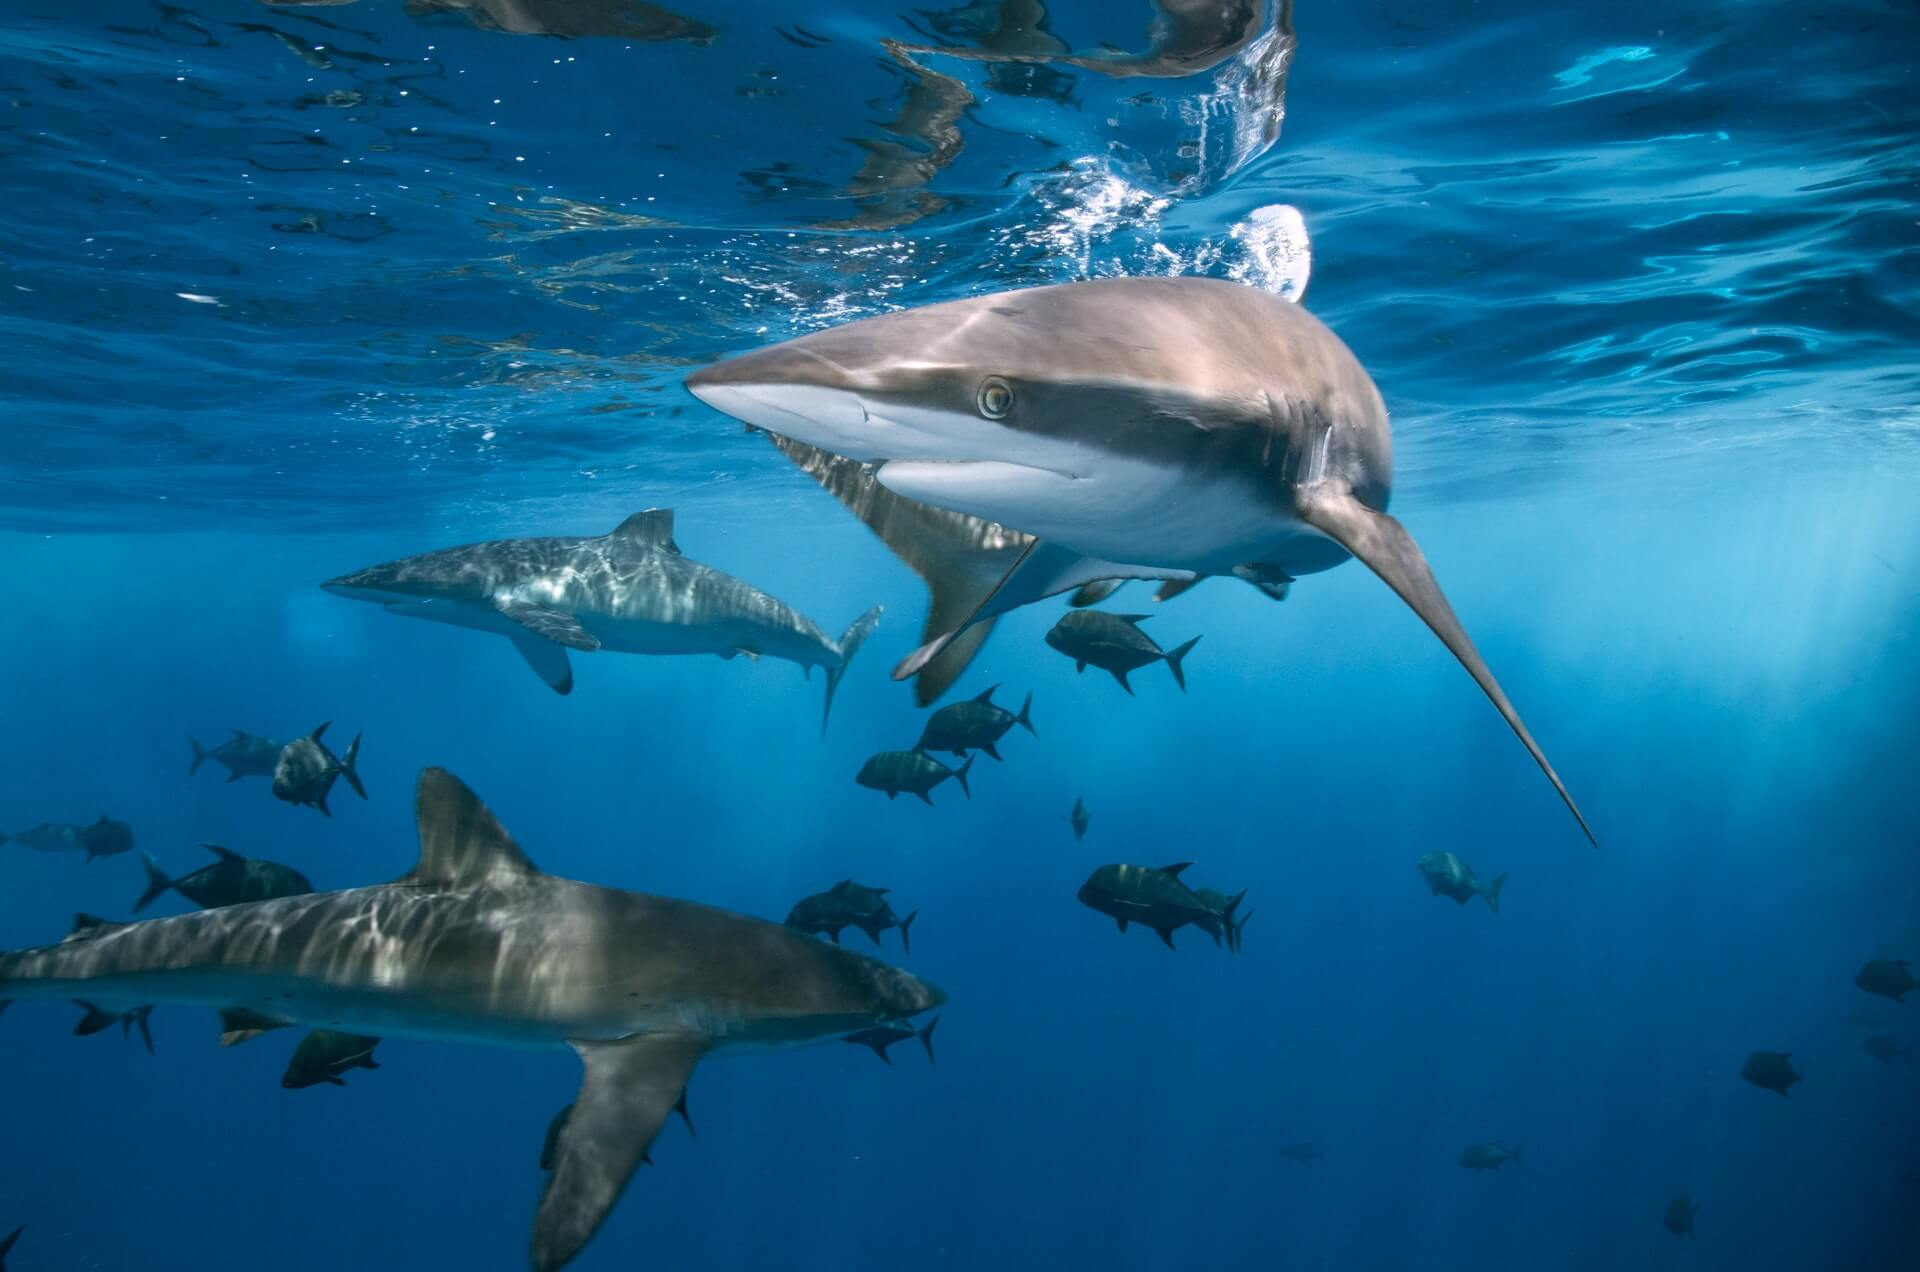 Another Image of sharks at an Oahu Shark Diving Tour